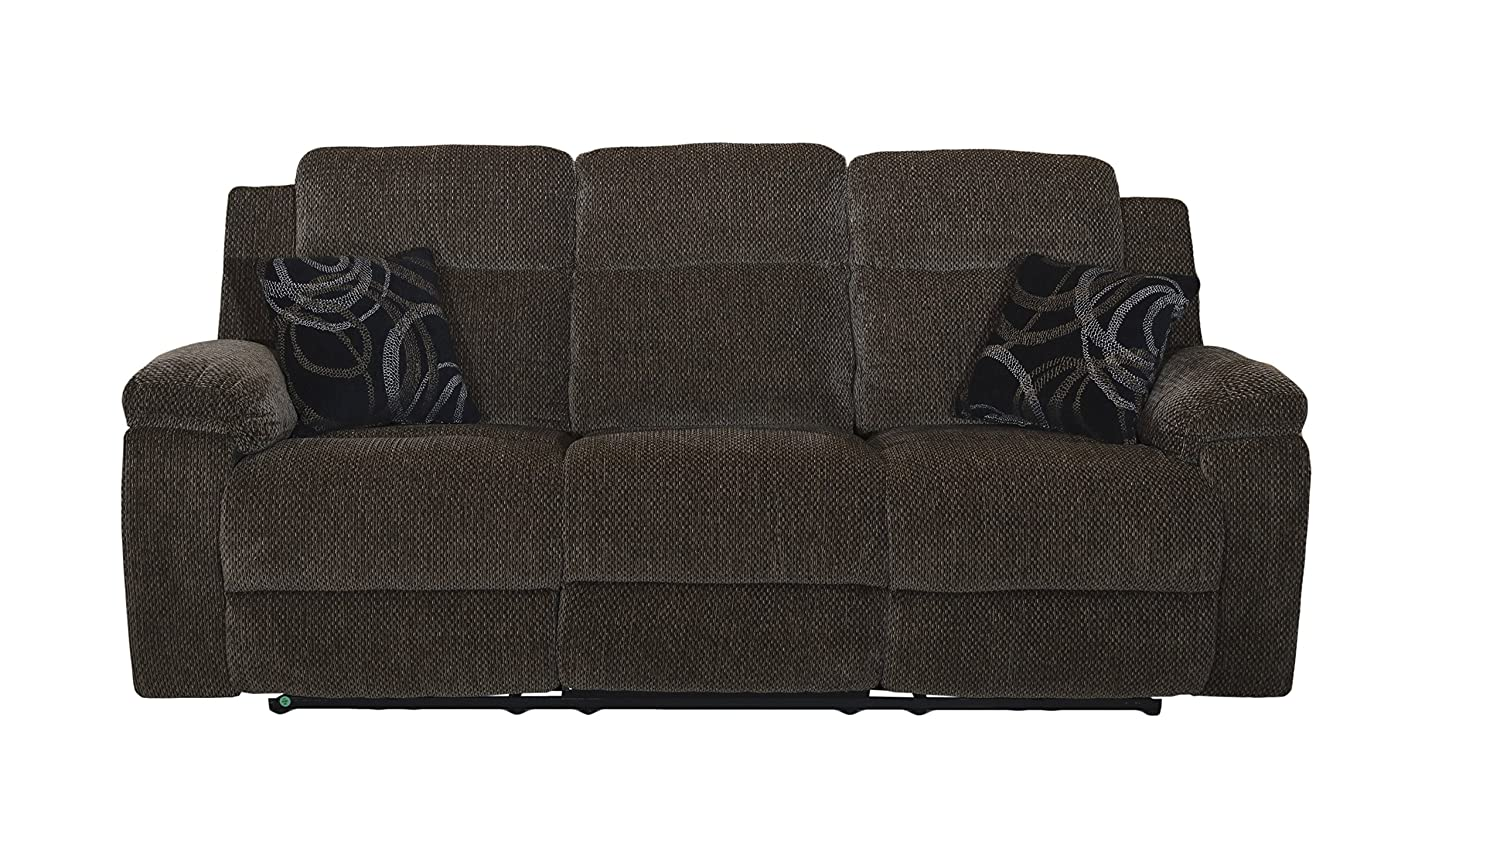 New Classic Furniture U4050-30-EBO Burke Upholstery Recliner Sofa, Manual, Light Ebony